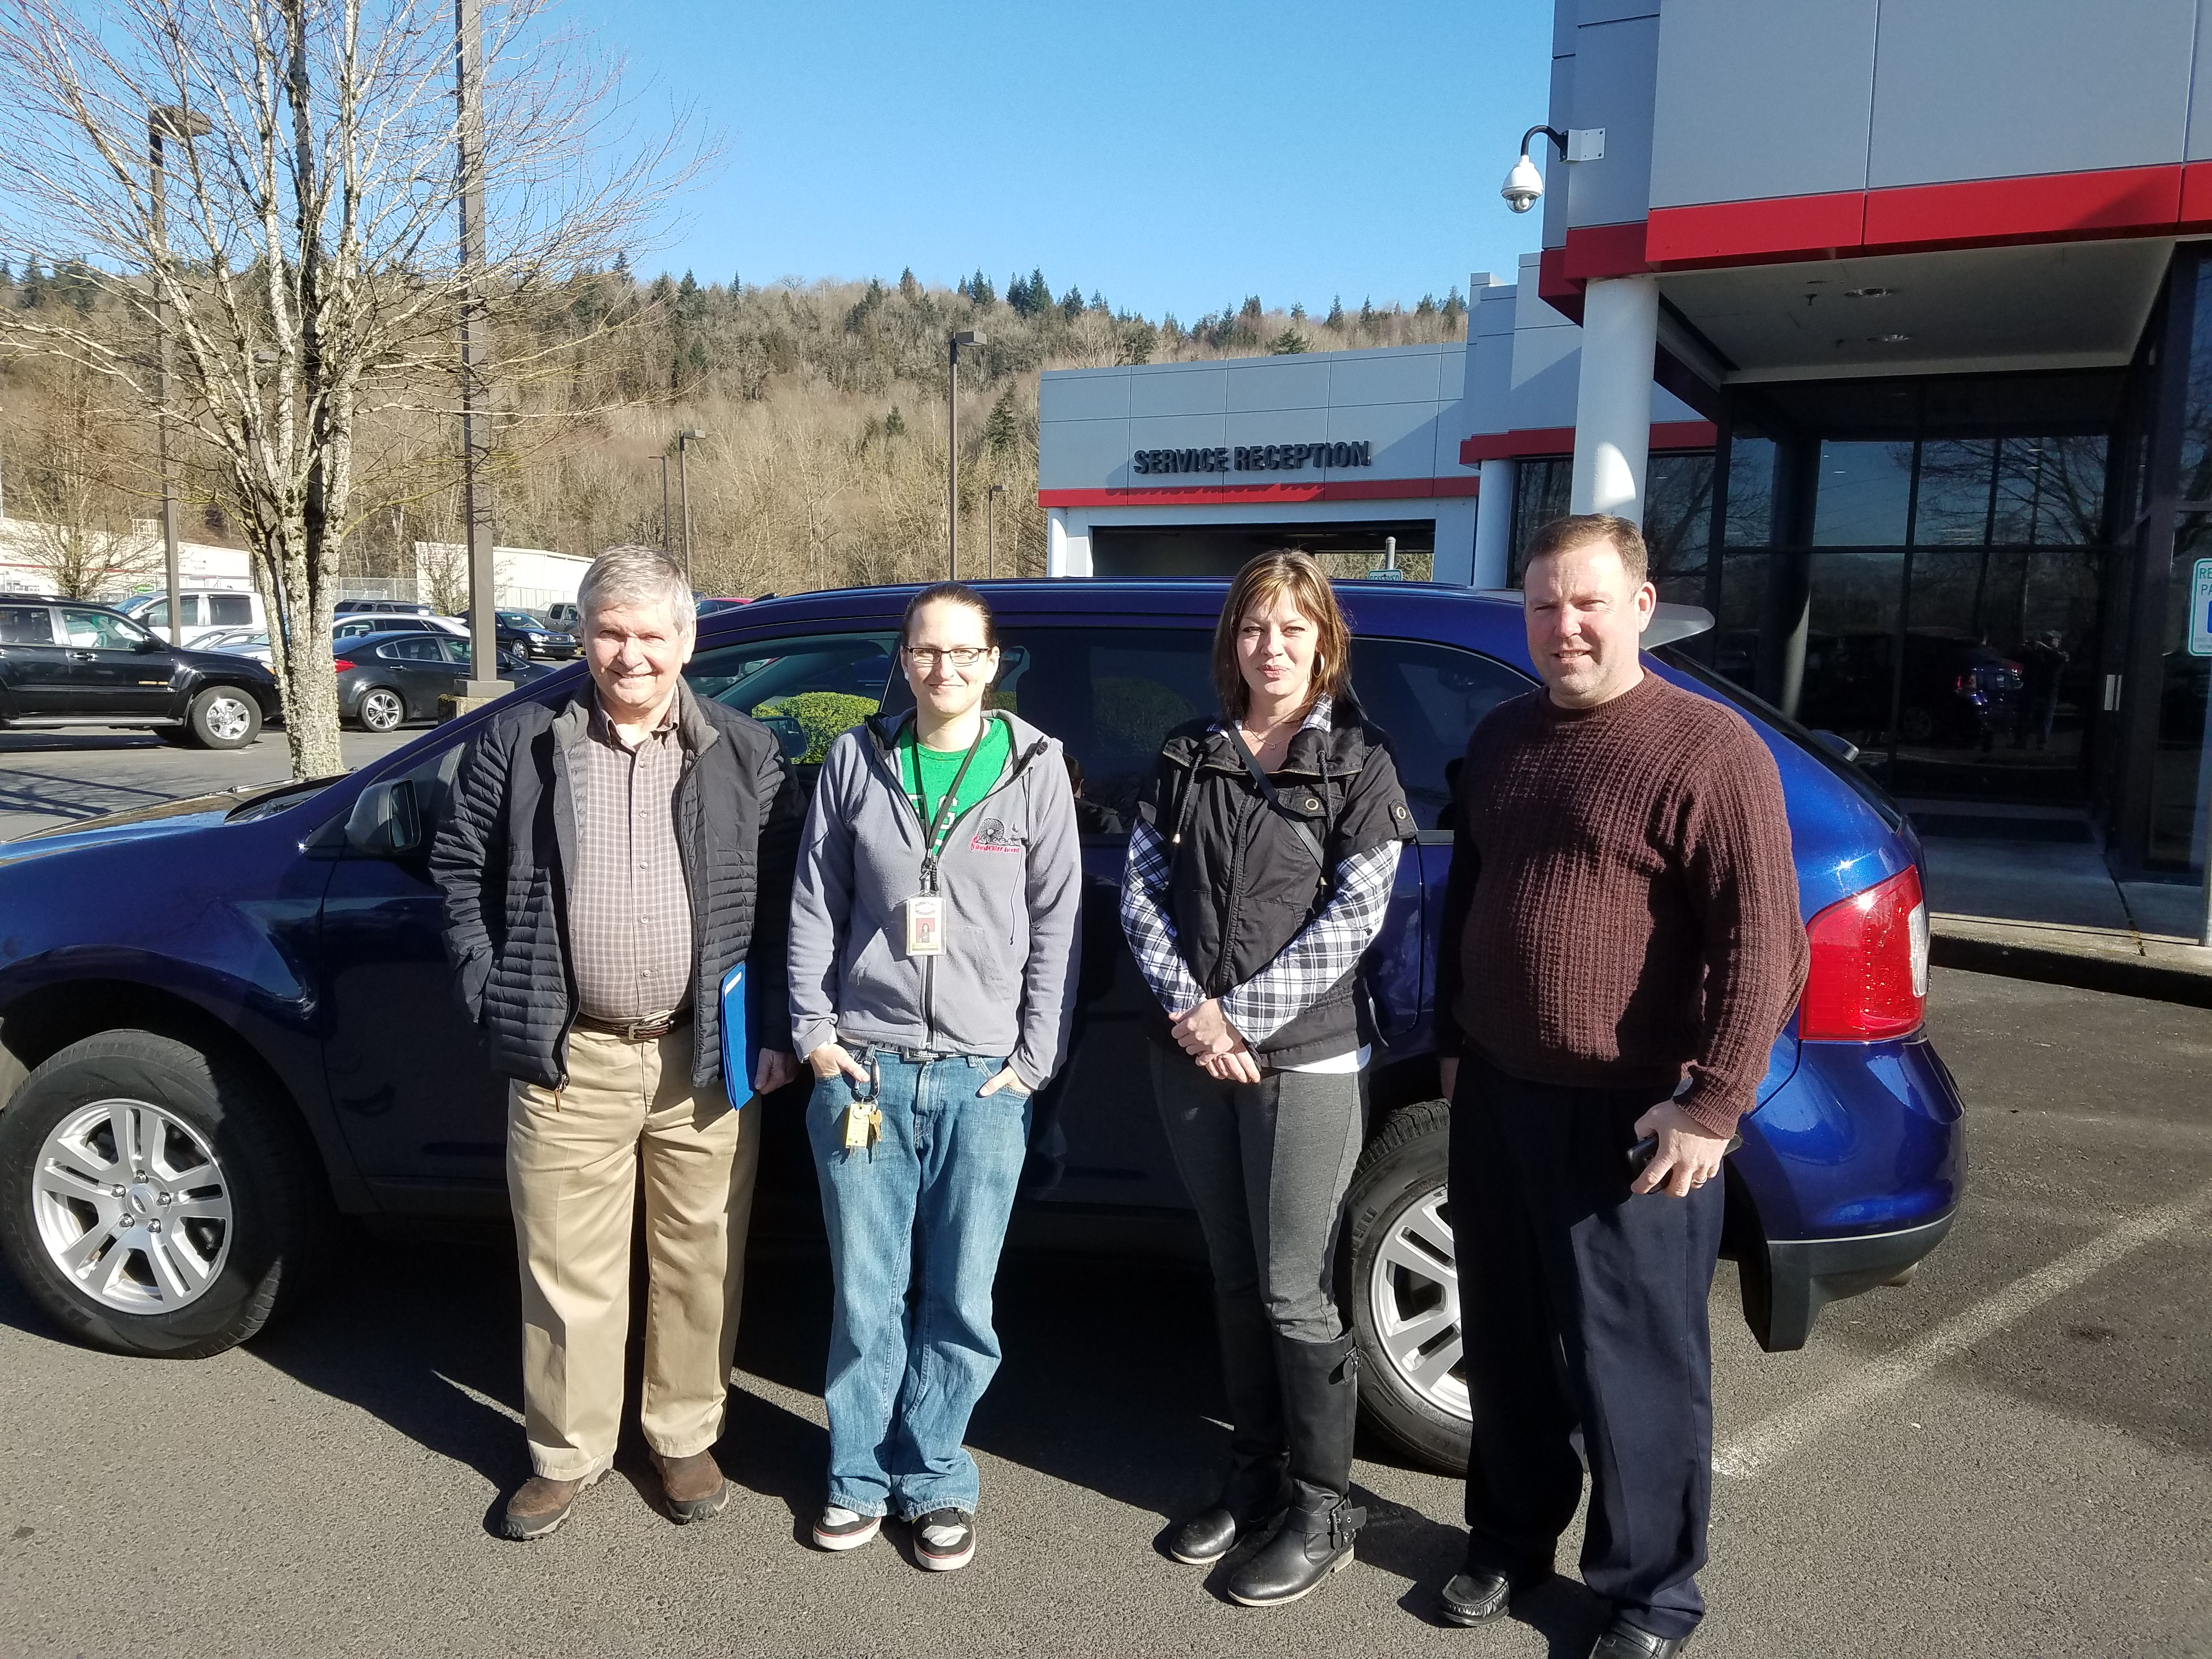 outreach-team-and-vehicle